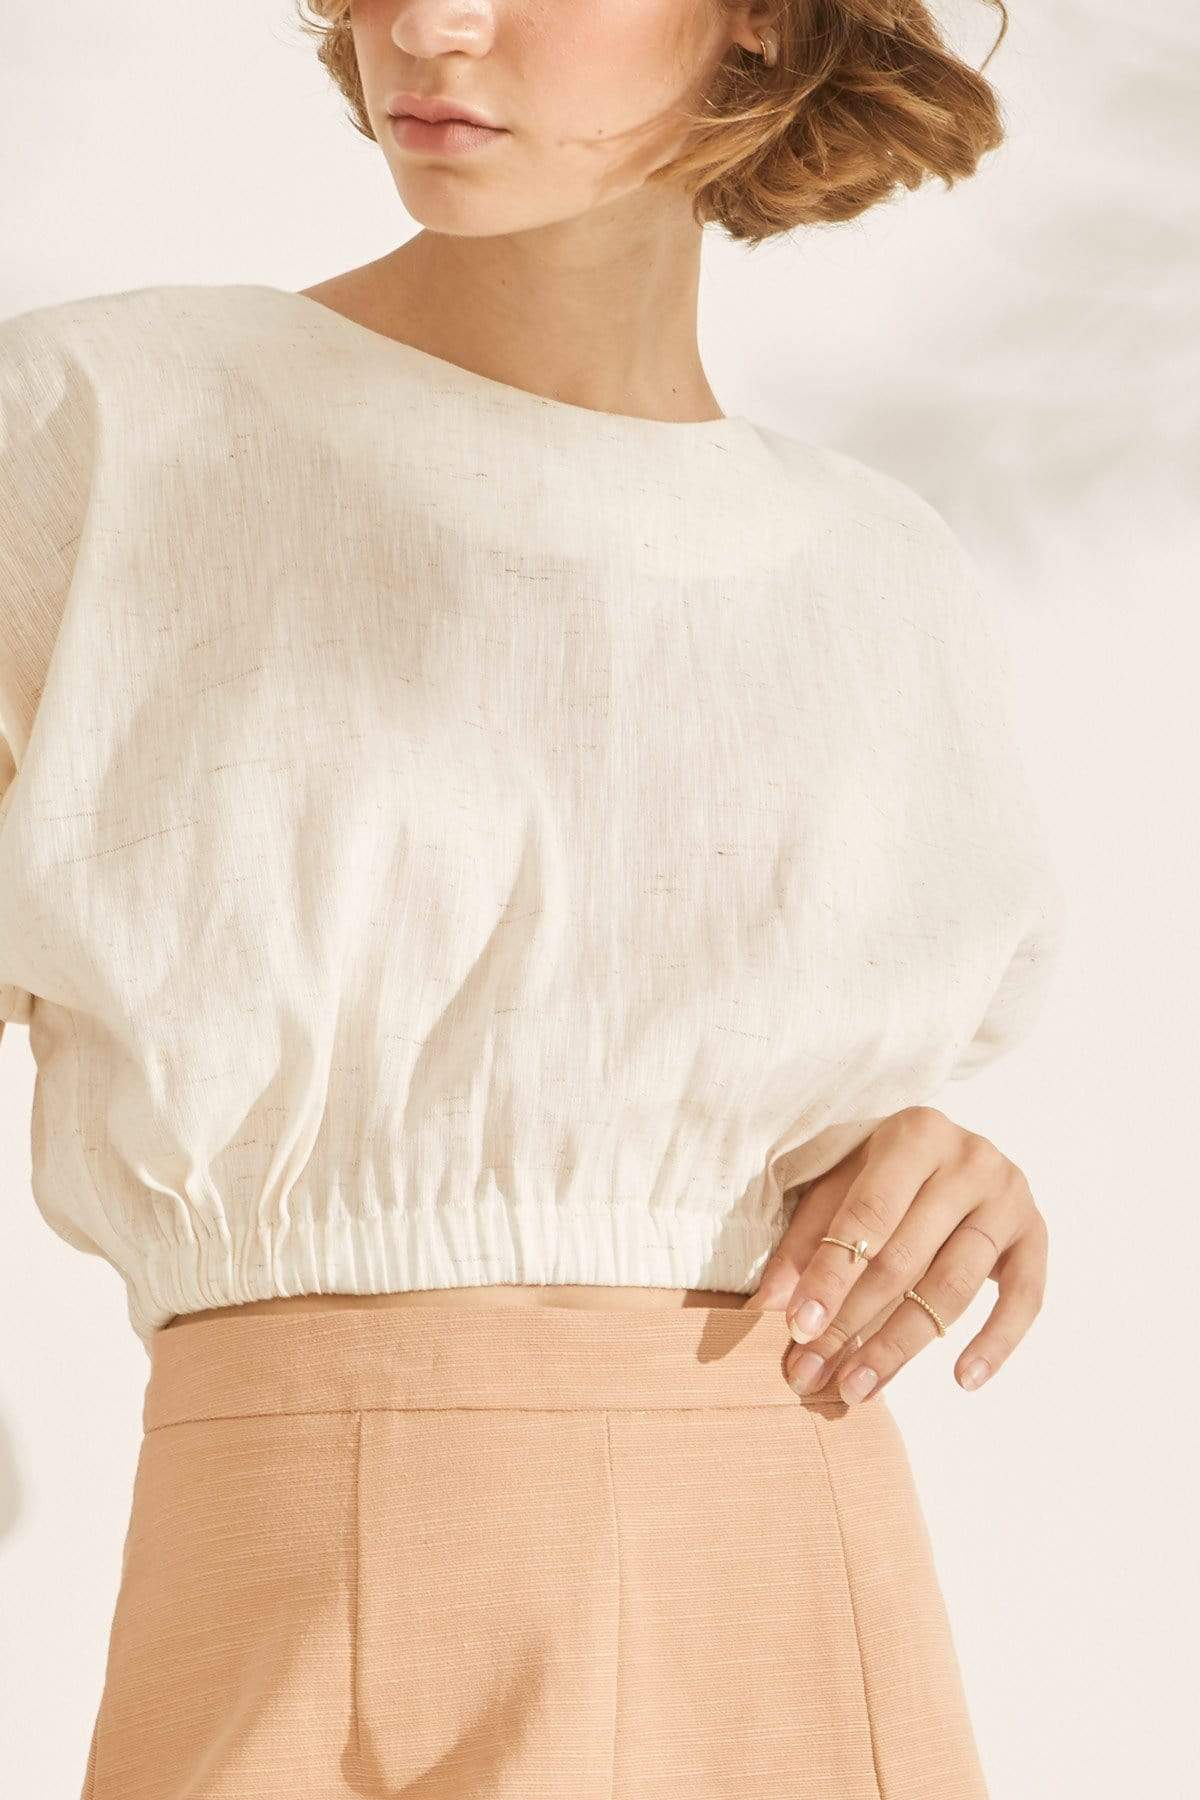 TAKTAI Blouse S / Natural Balloon Sleeve Crop Top